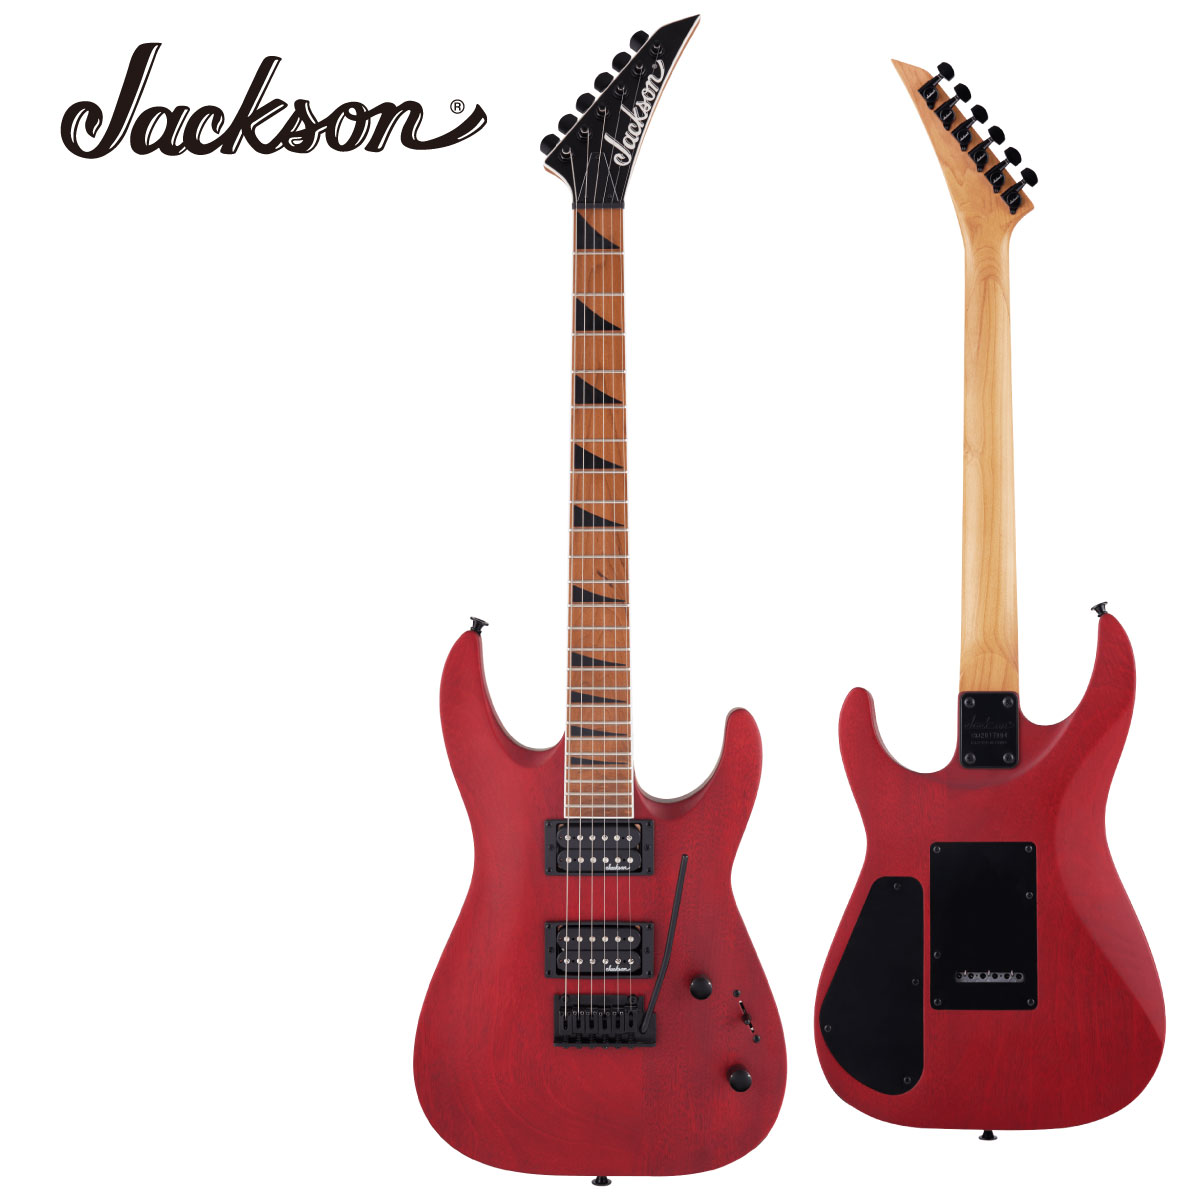 Jackson JS Series 休日 Dinky Arch Top JS24 DKAM -Red Electric Stain- Guitar 新品 エレキギター 赤 ジャクソン レッド 通販 激安◆